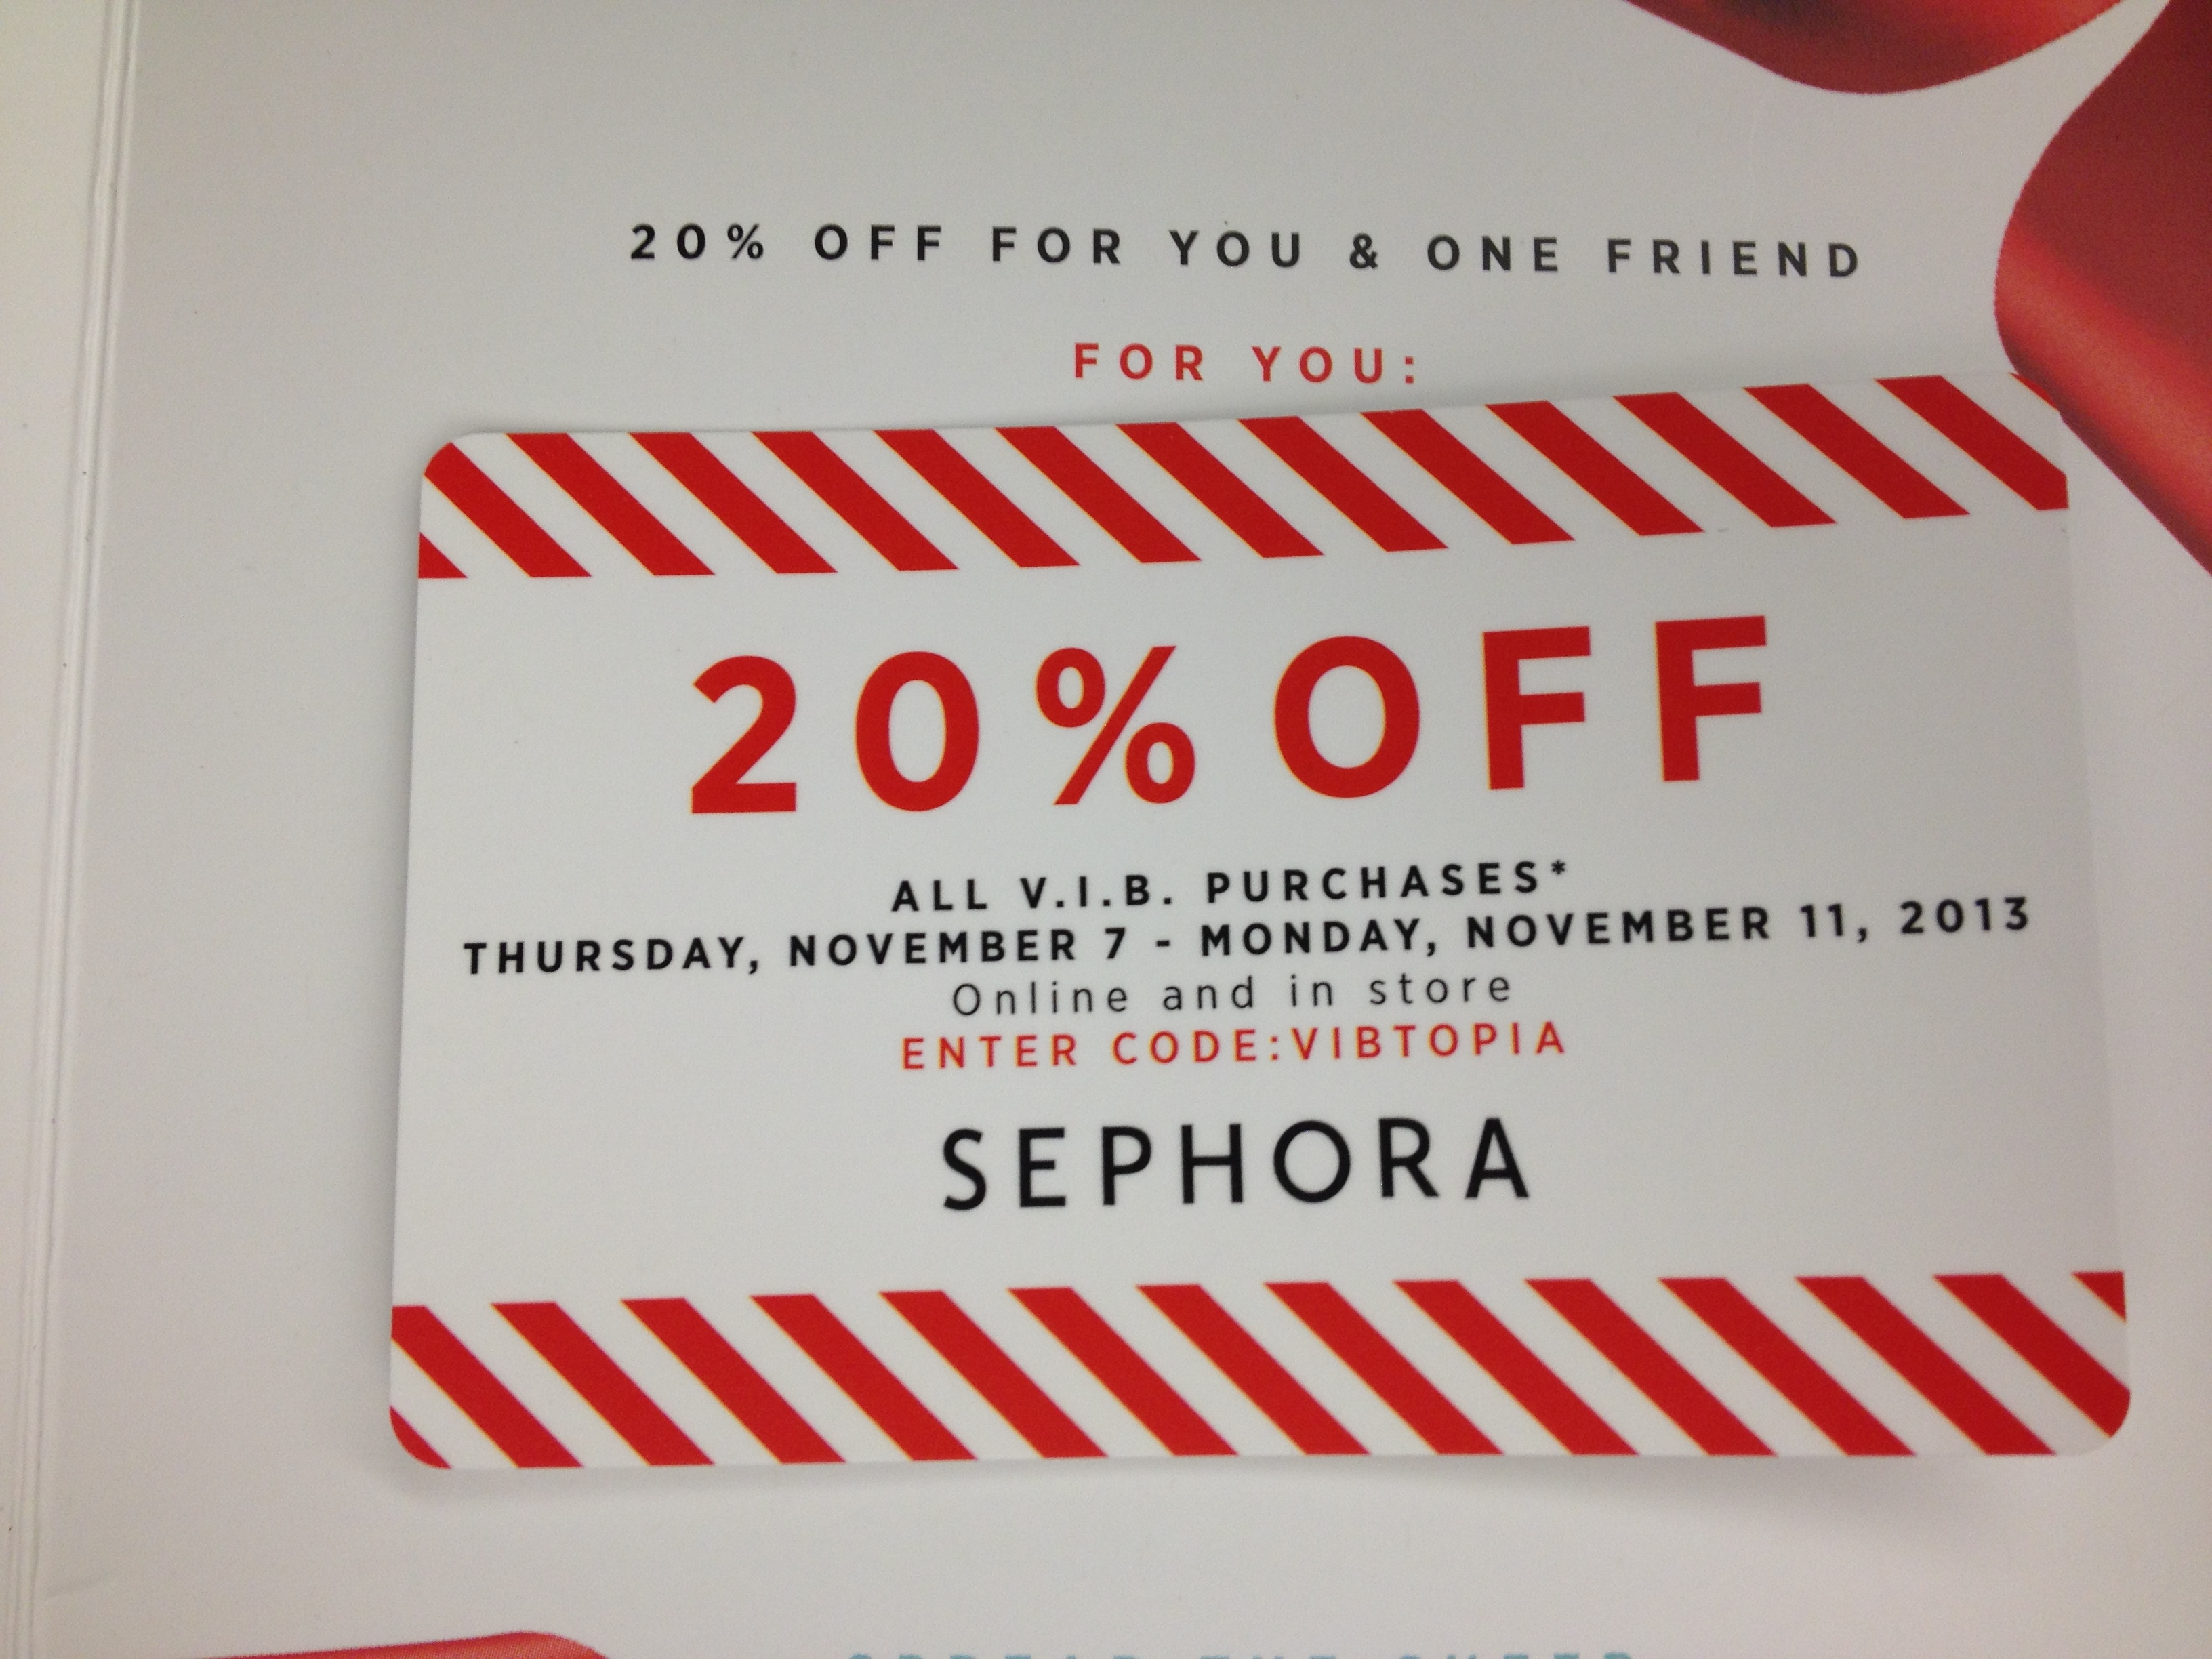 image regarding Sephora Printable Coupons referred to as Coupon sephora inside of retail outlet / Wiggle athletics footwear